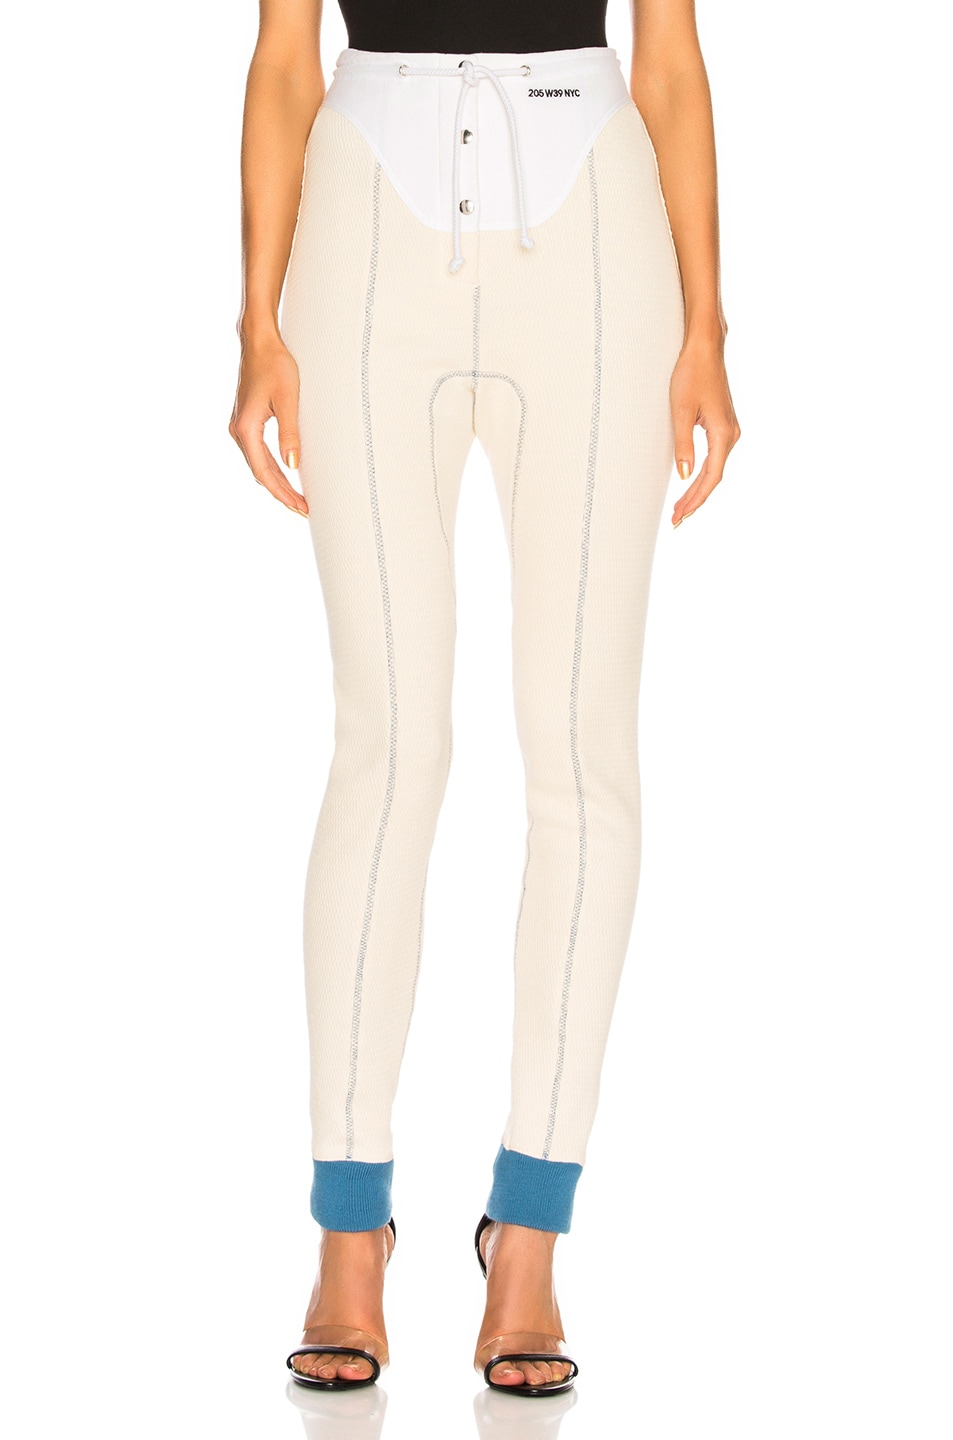 Image 1 of CALVIN KLEIN 205W39NYC High Waisted Leggings in Ecru & Optic White